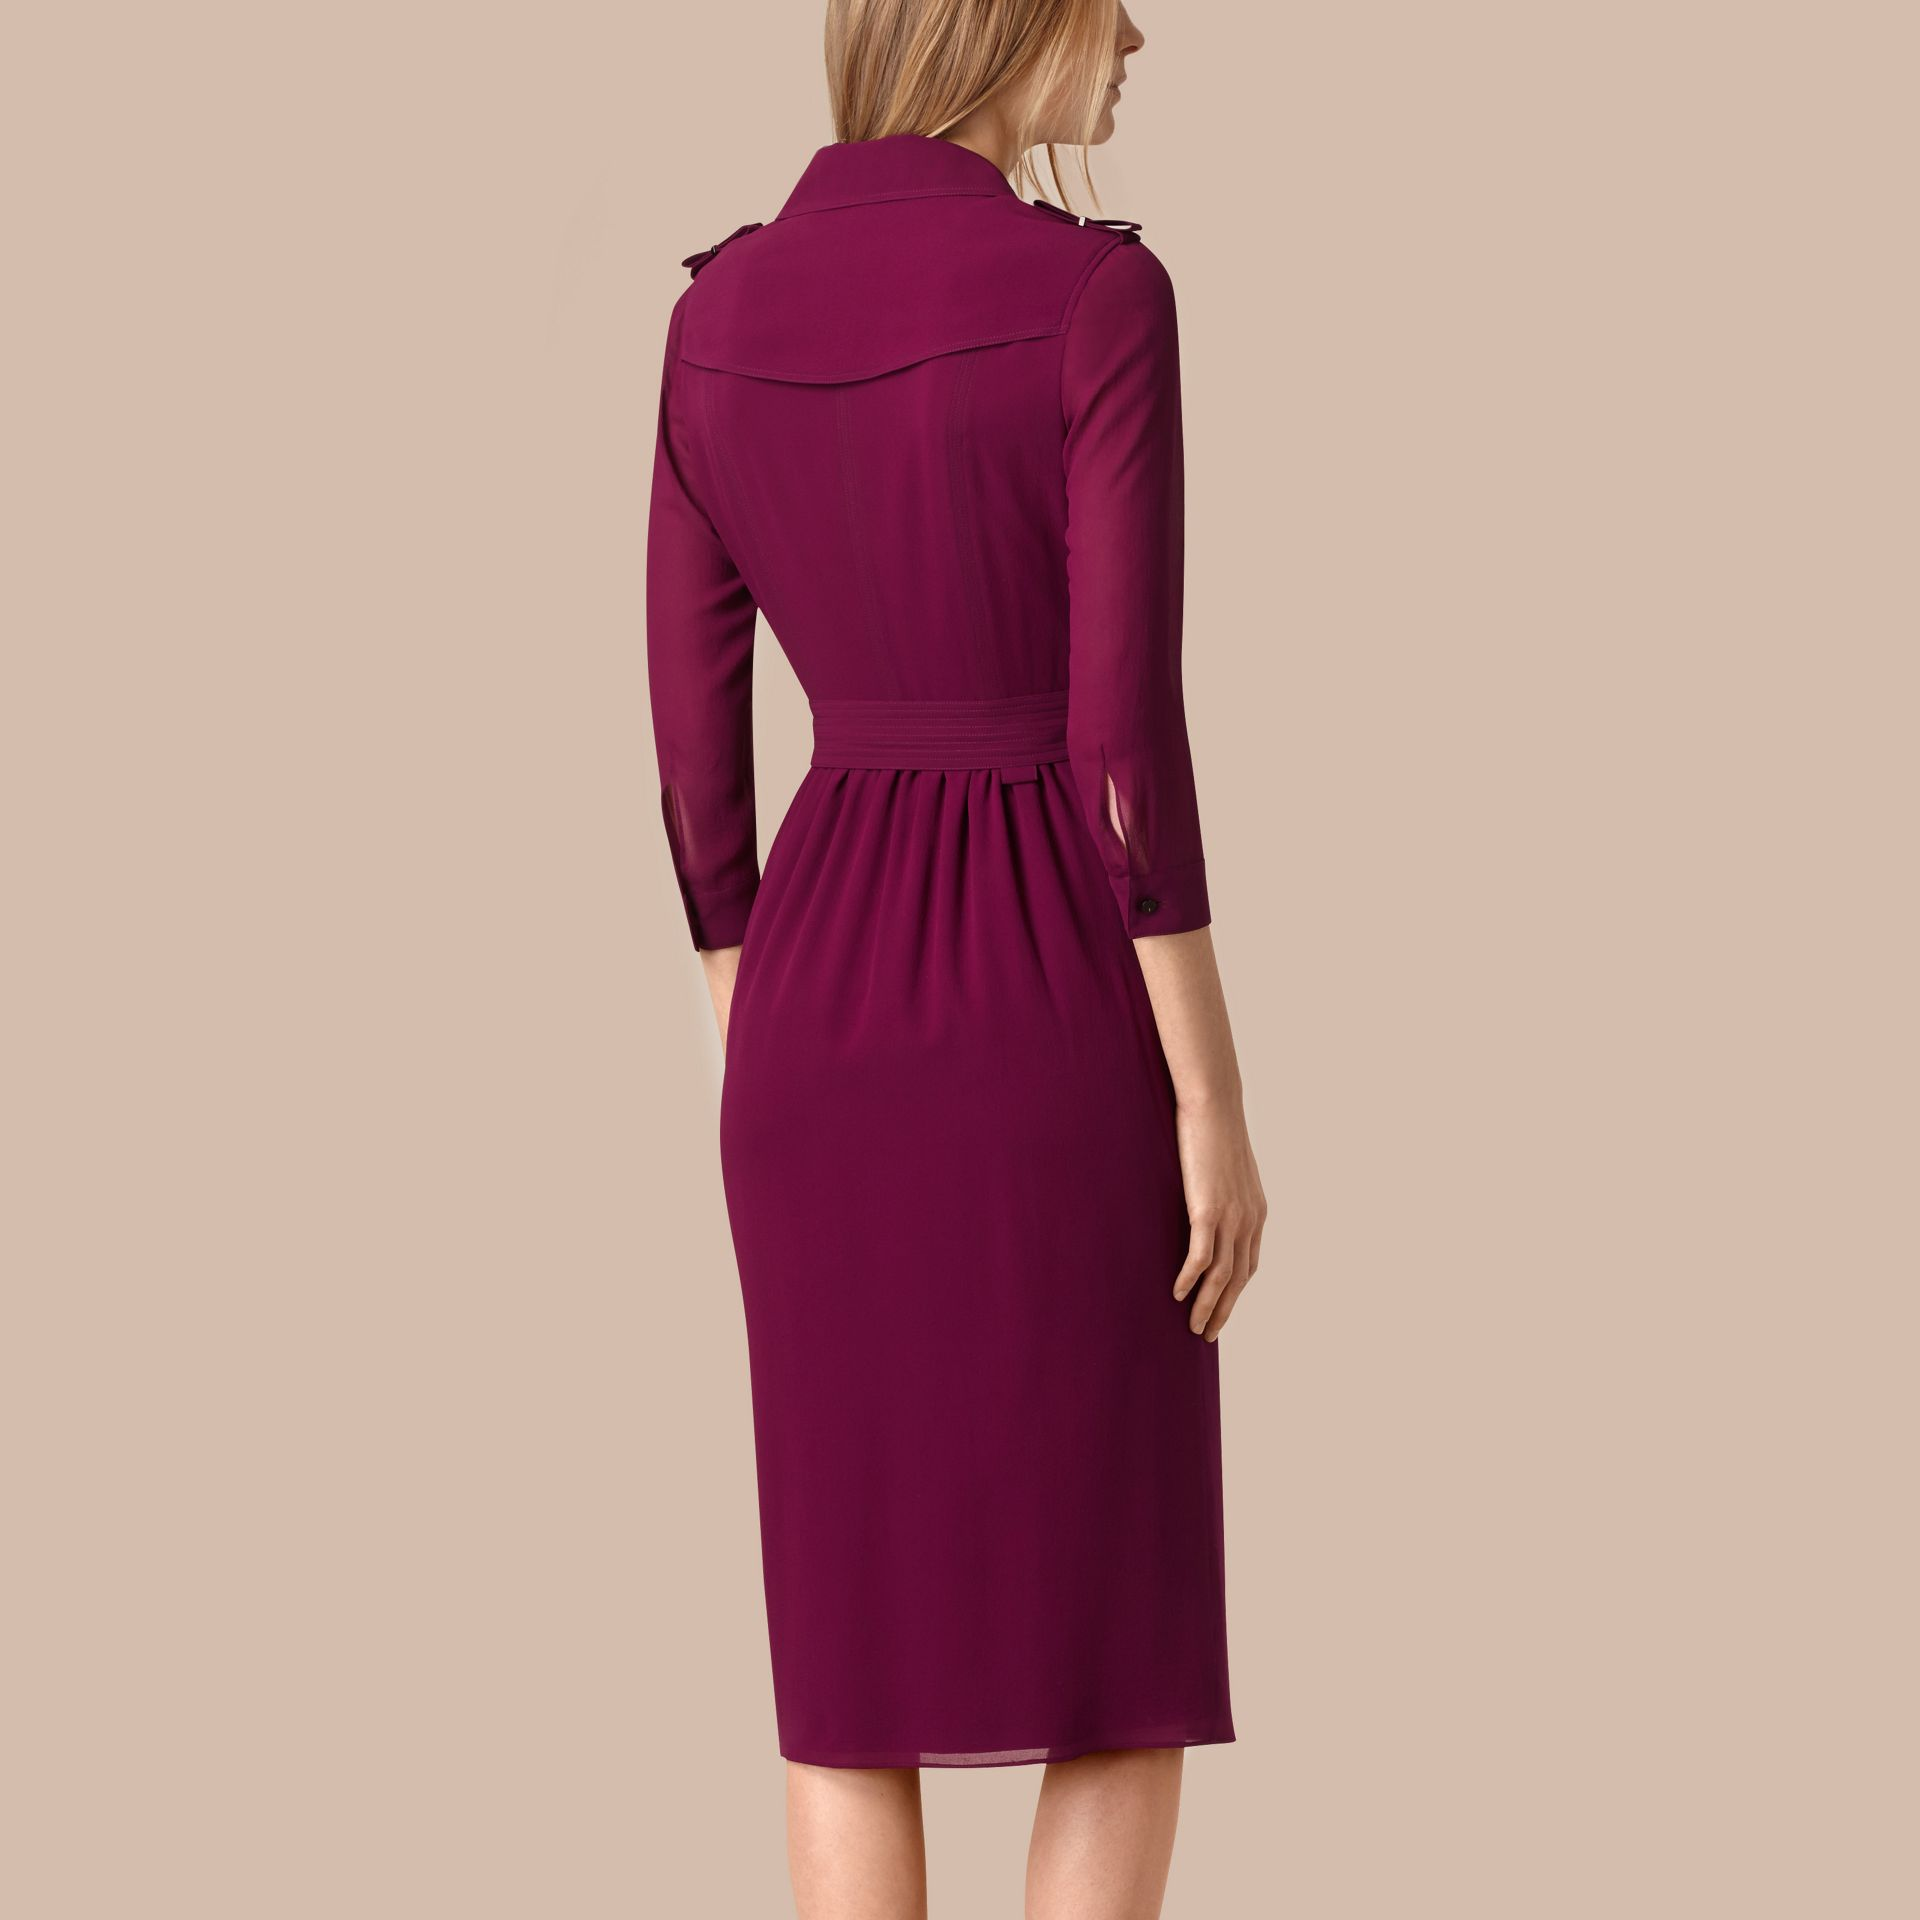 Silk Wrap Trench Dress in Bright Burgundy - Women | Burberry - gallery image 3